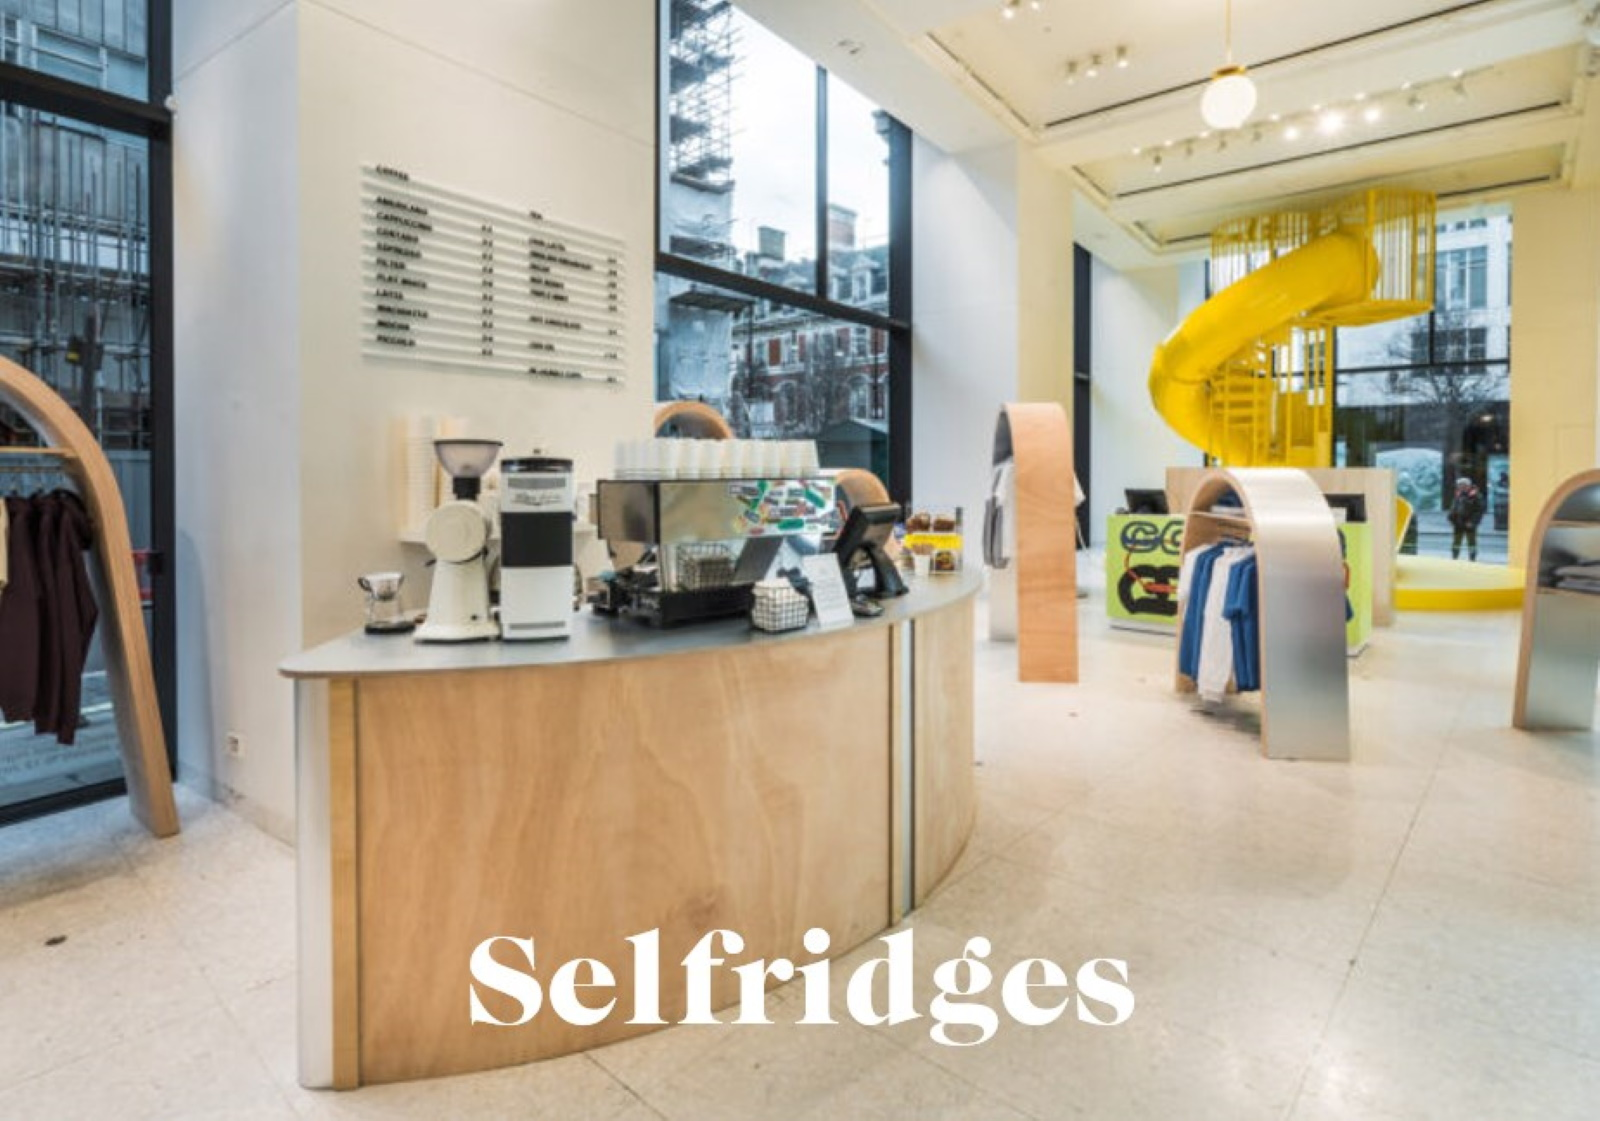 pop-up selfridges